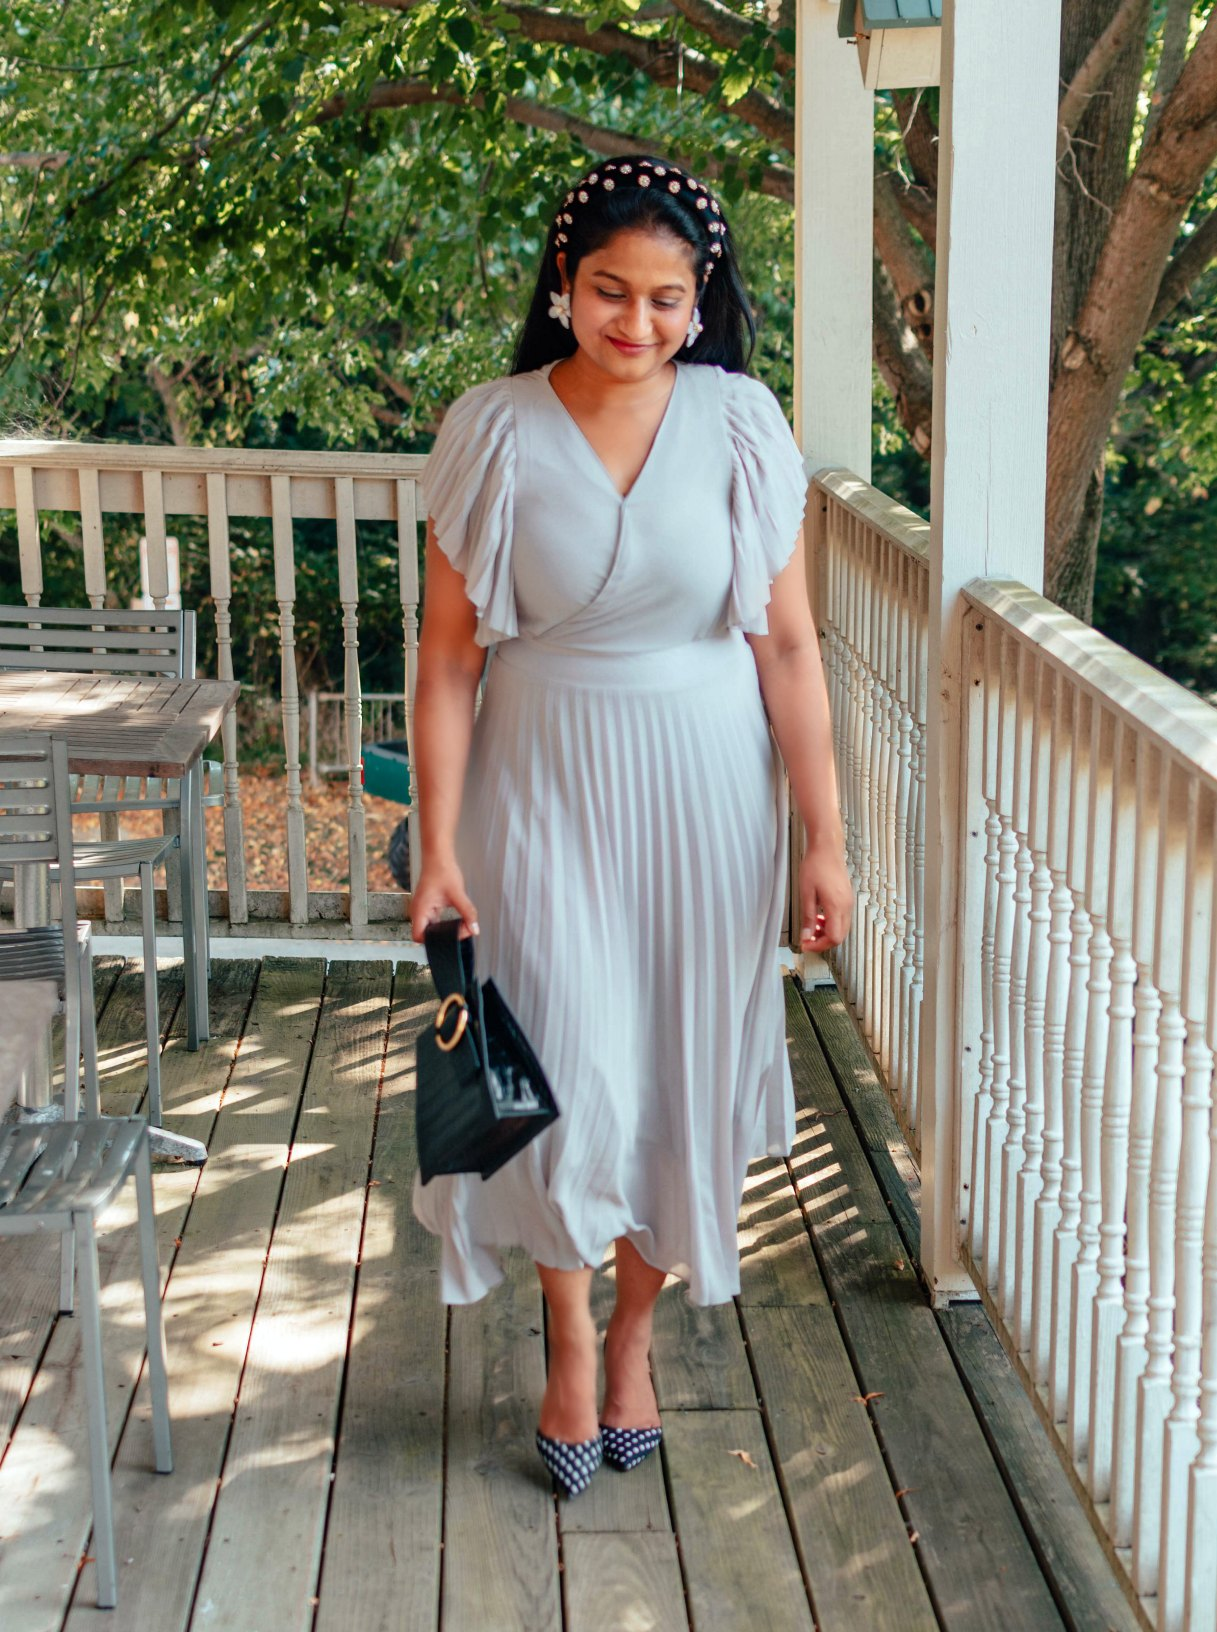 Wearing Ivy City co pleated dress in lilac, Parisa Wang Enchanted Top handle Bag, Pearl headband 7